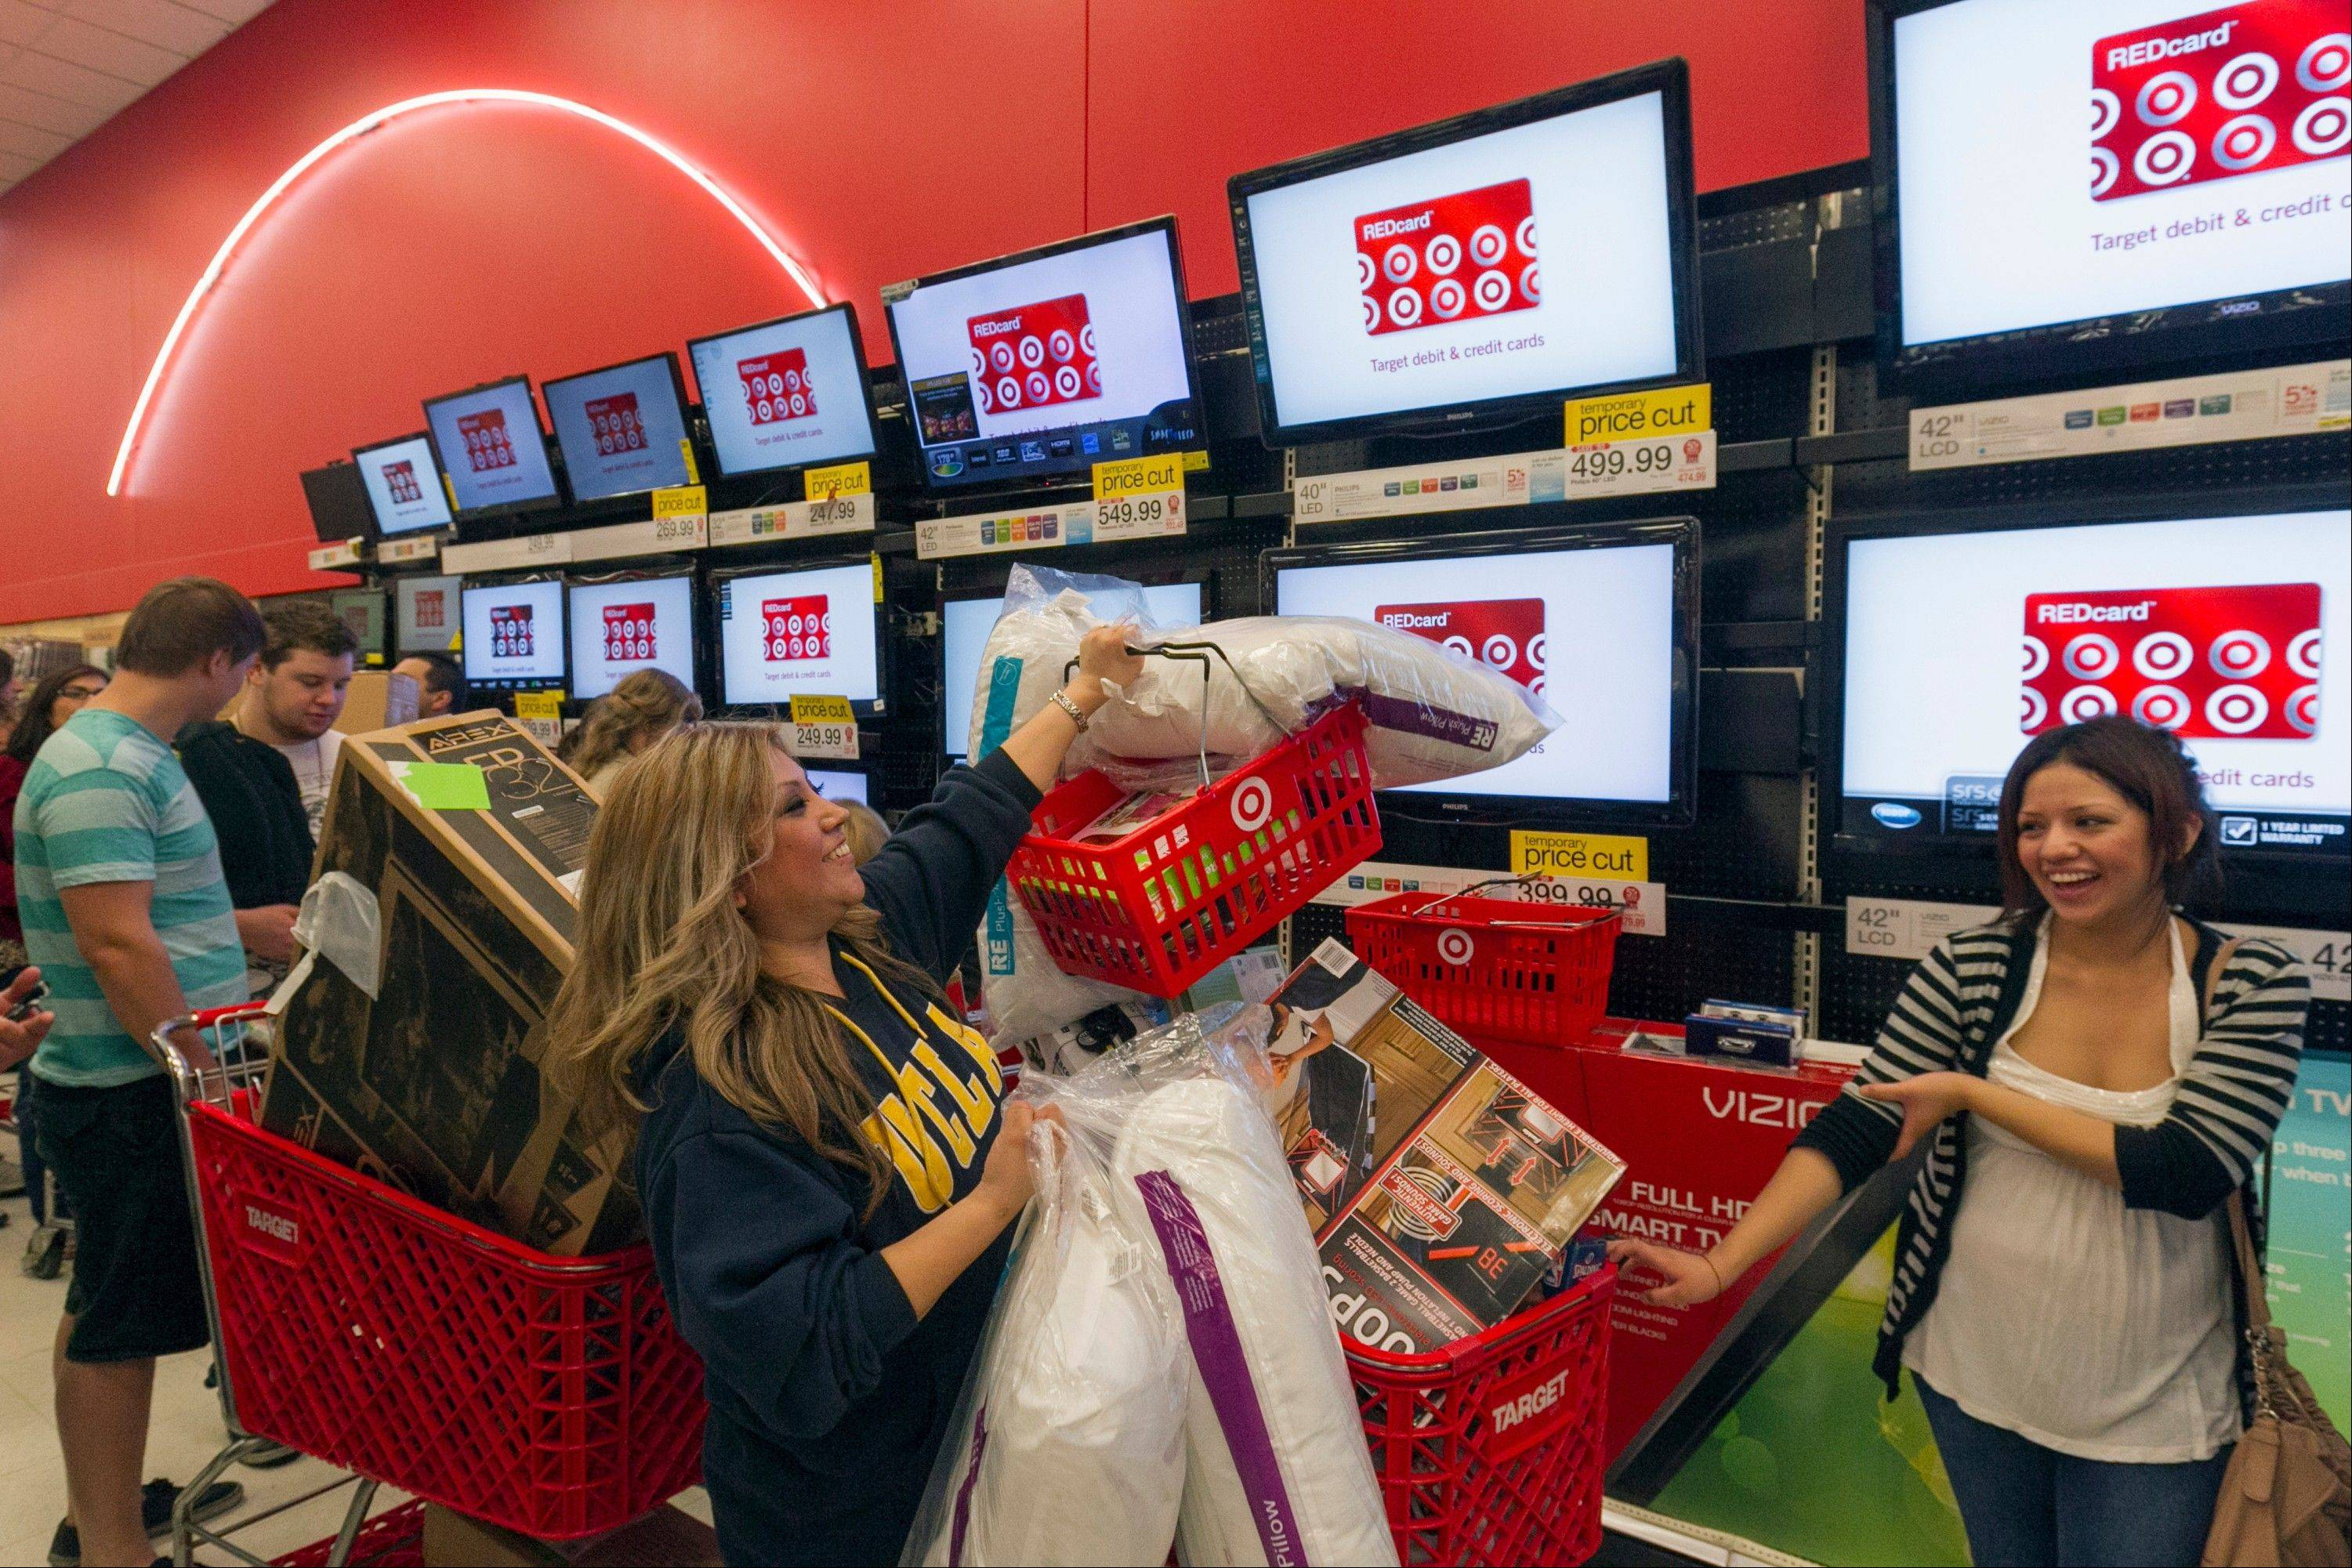 Associated Press/Nov. 22, 2012 Shopper Roxanna Garcia, middle, waits in line to pay for more than $1000 in gifts at the Target store in Burbank, Calif.